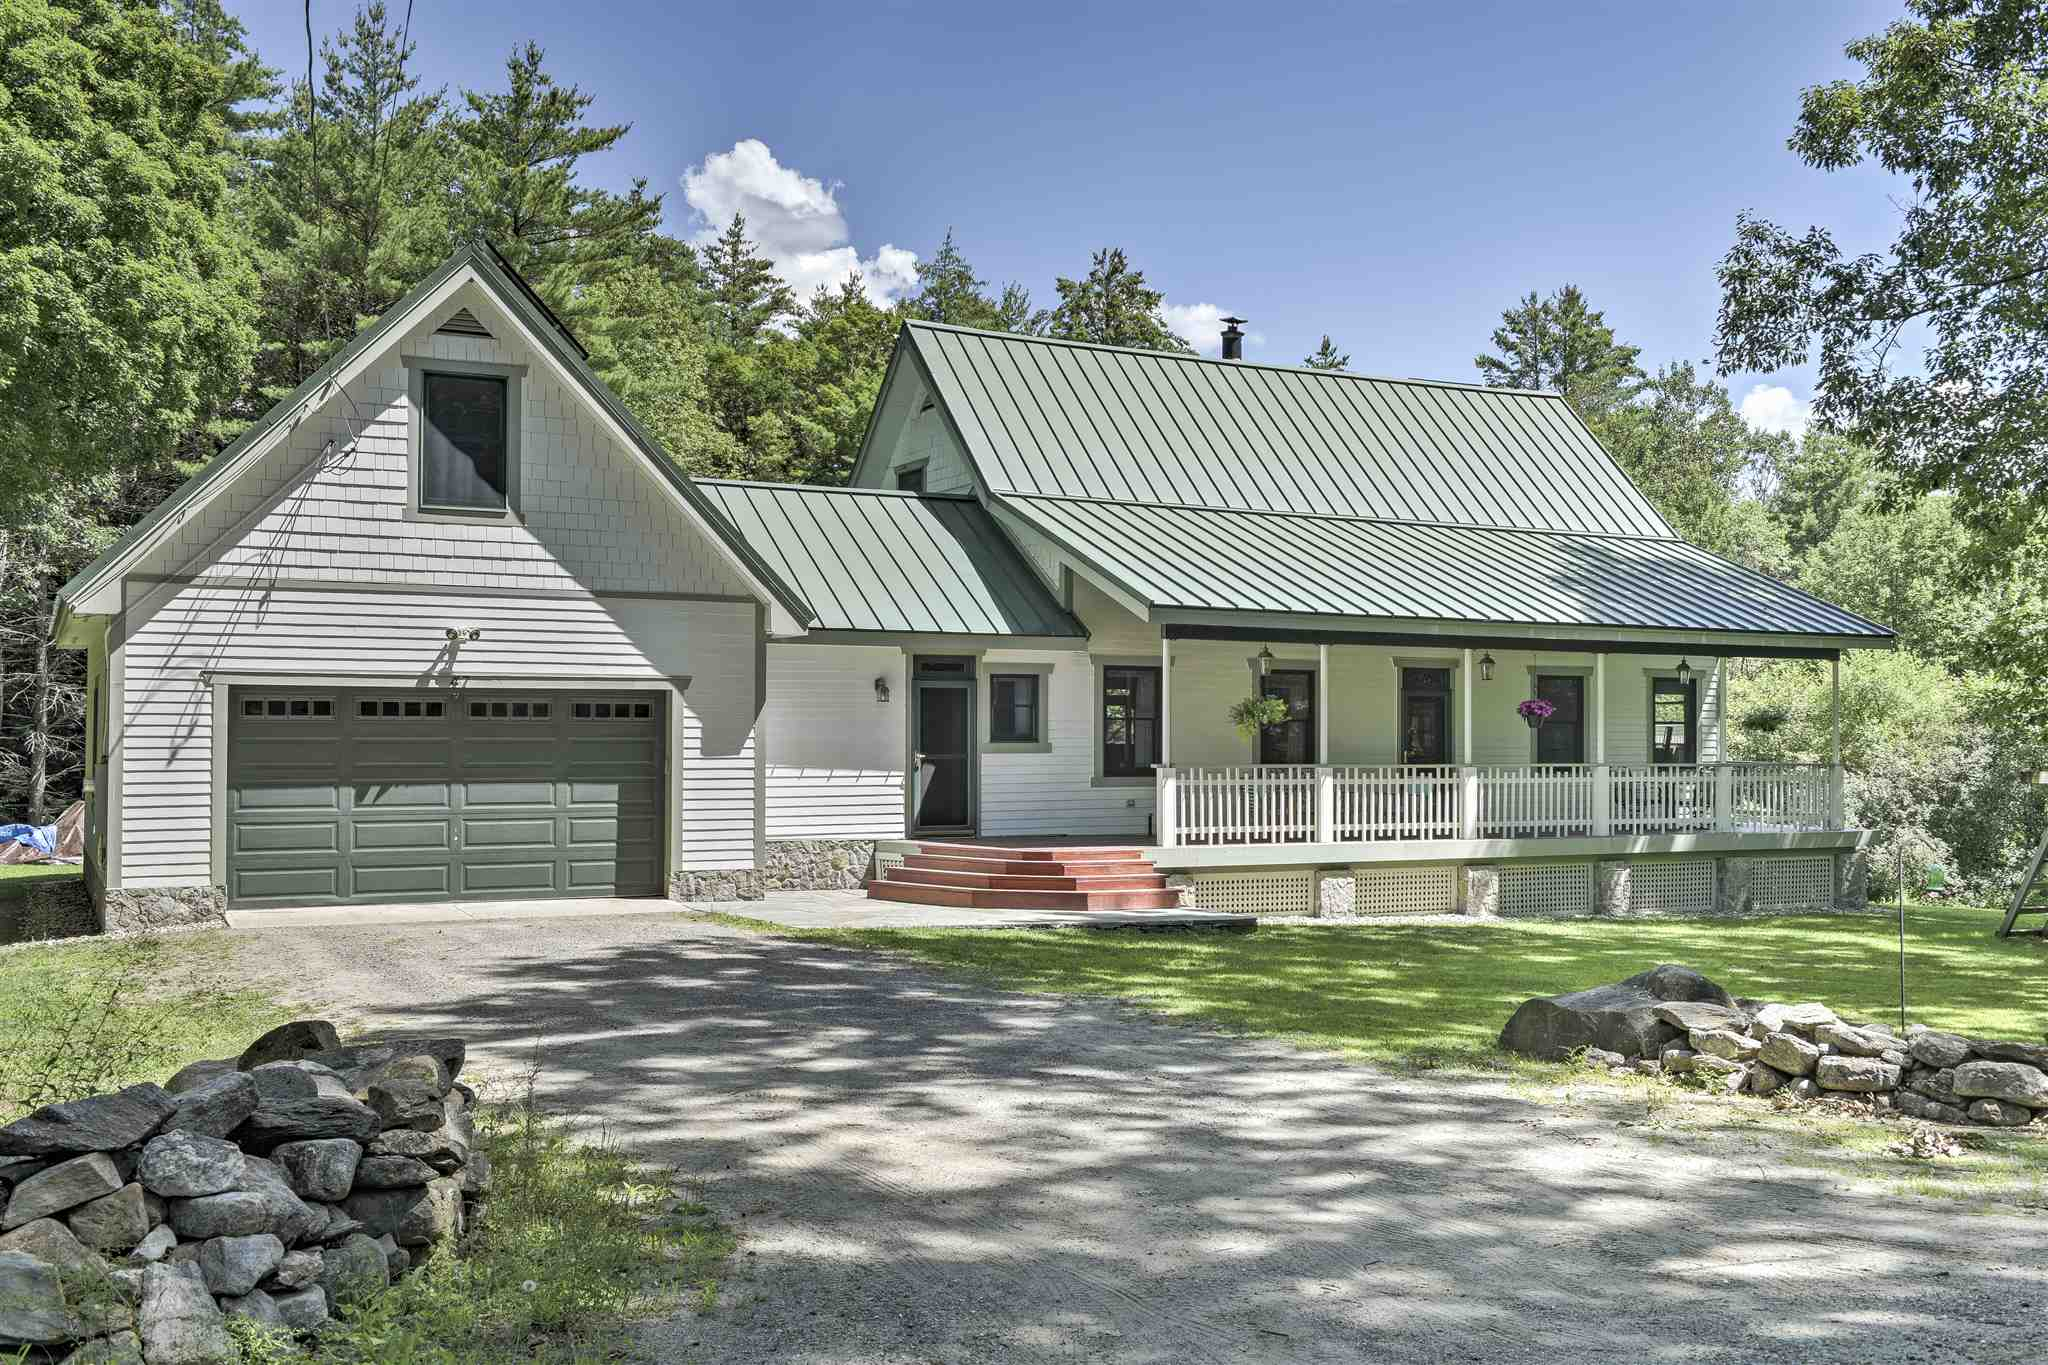 MLS 4820283: 47 Whipple Hill Road, Walpole NH